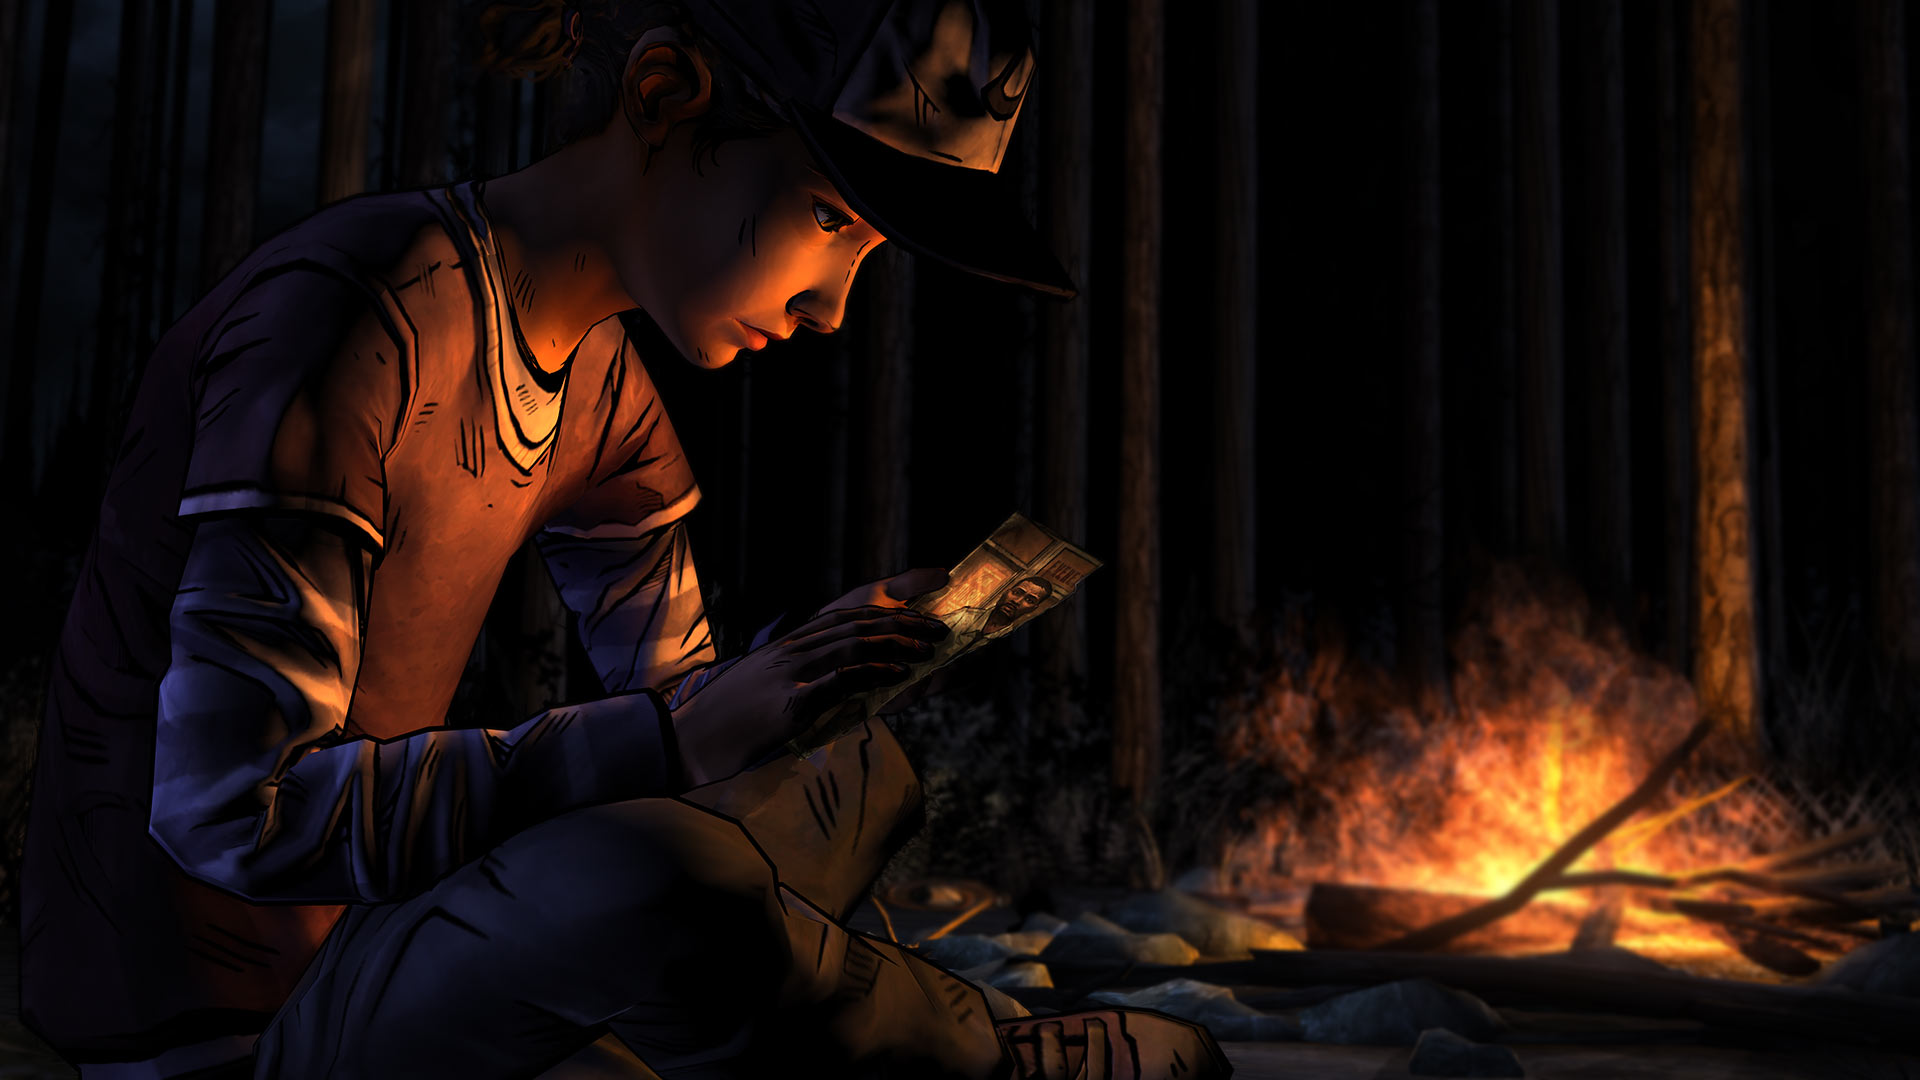 Clementine regresa en la segunda temporada de The Walking Dead [Anuncios]